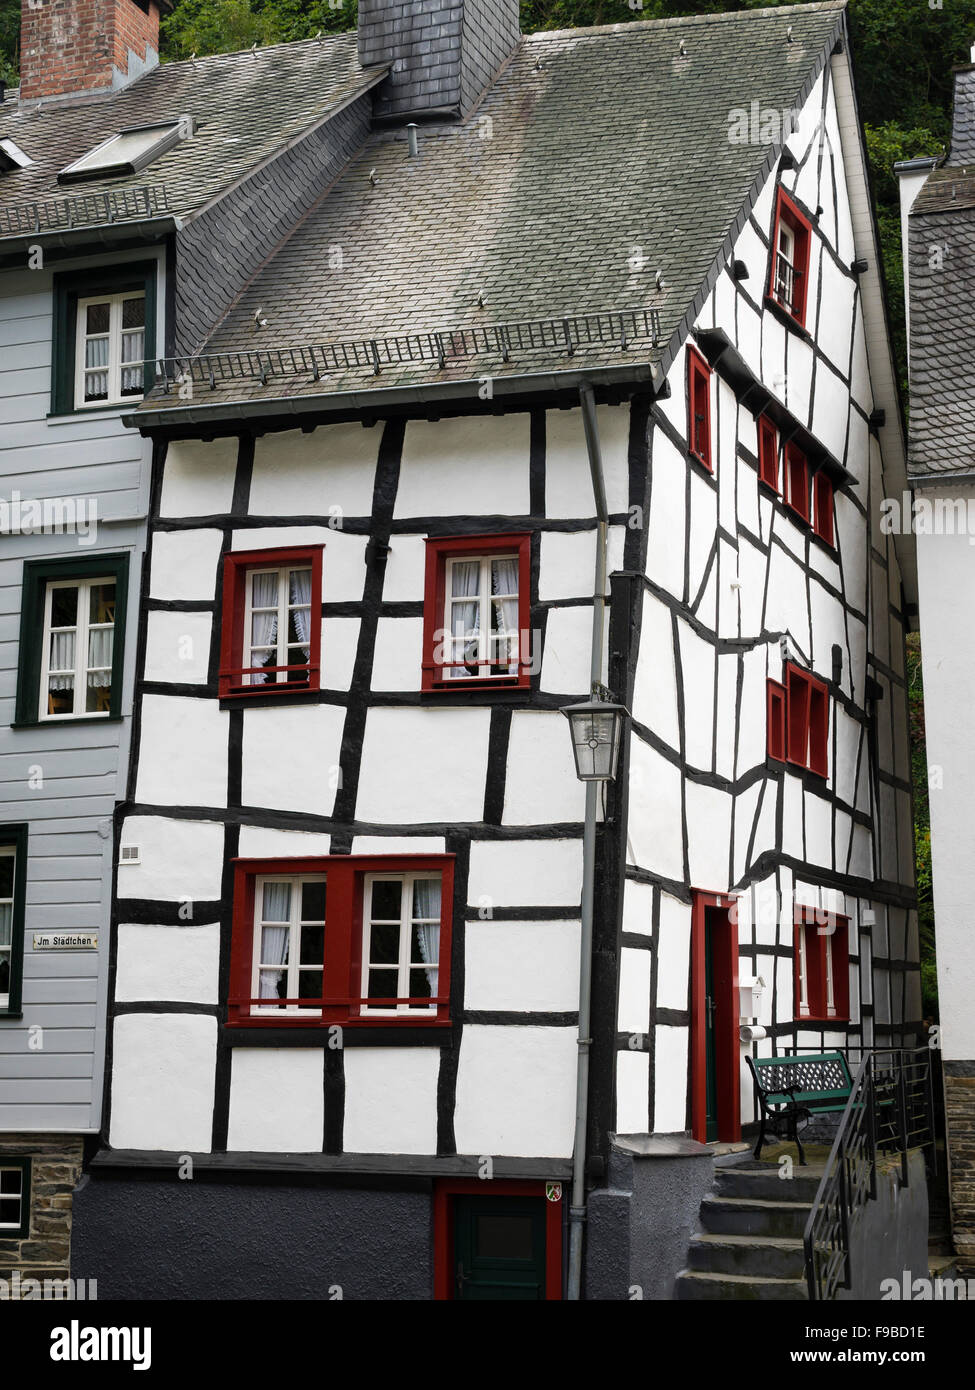 An old half-timbered house in the town of Monschau / Eifel region / Germany. - Stock Image